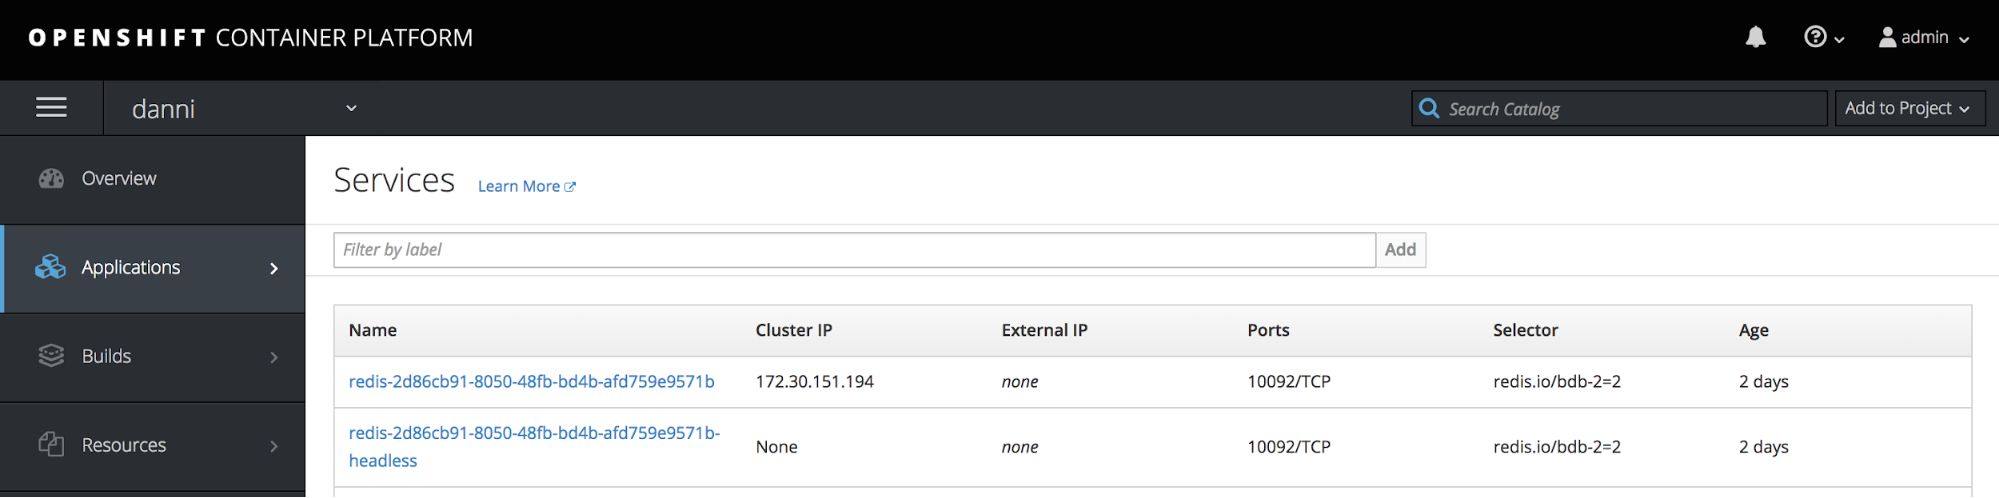 OpenShift services screen